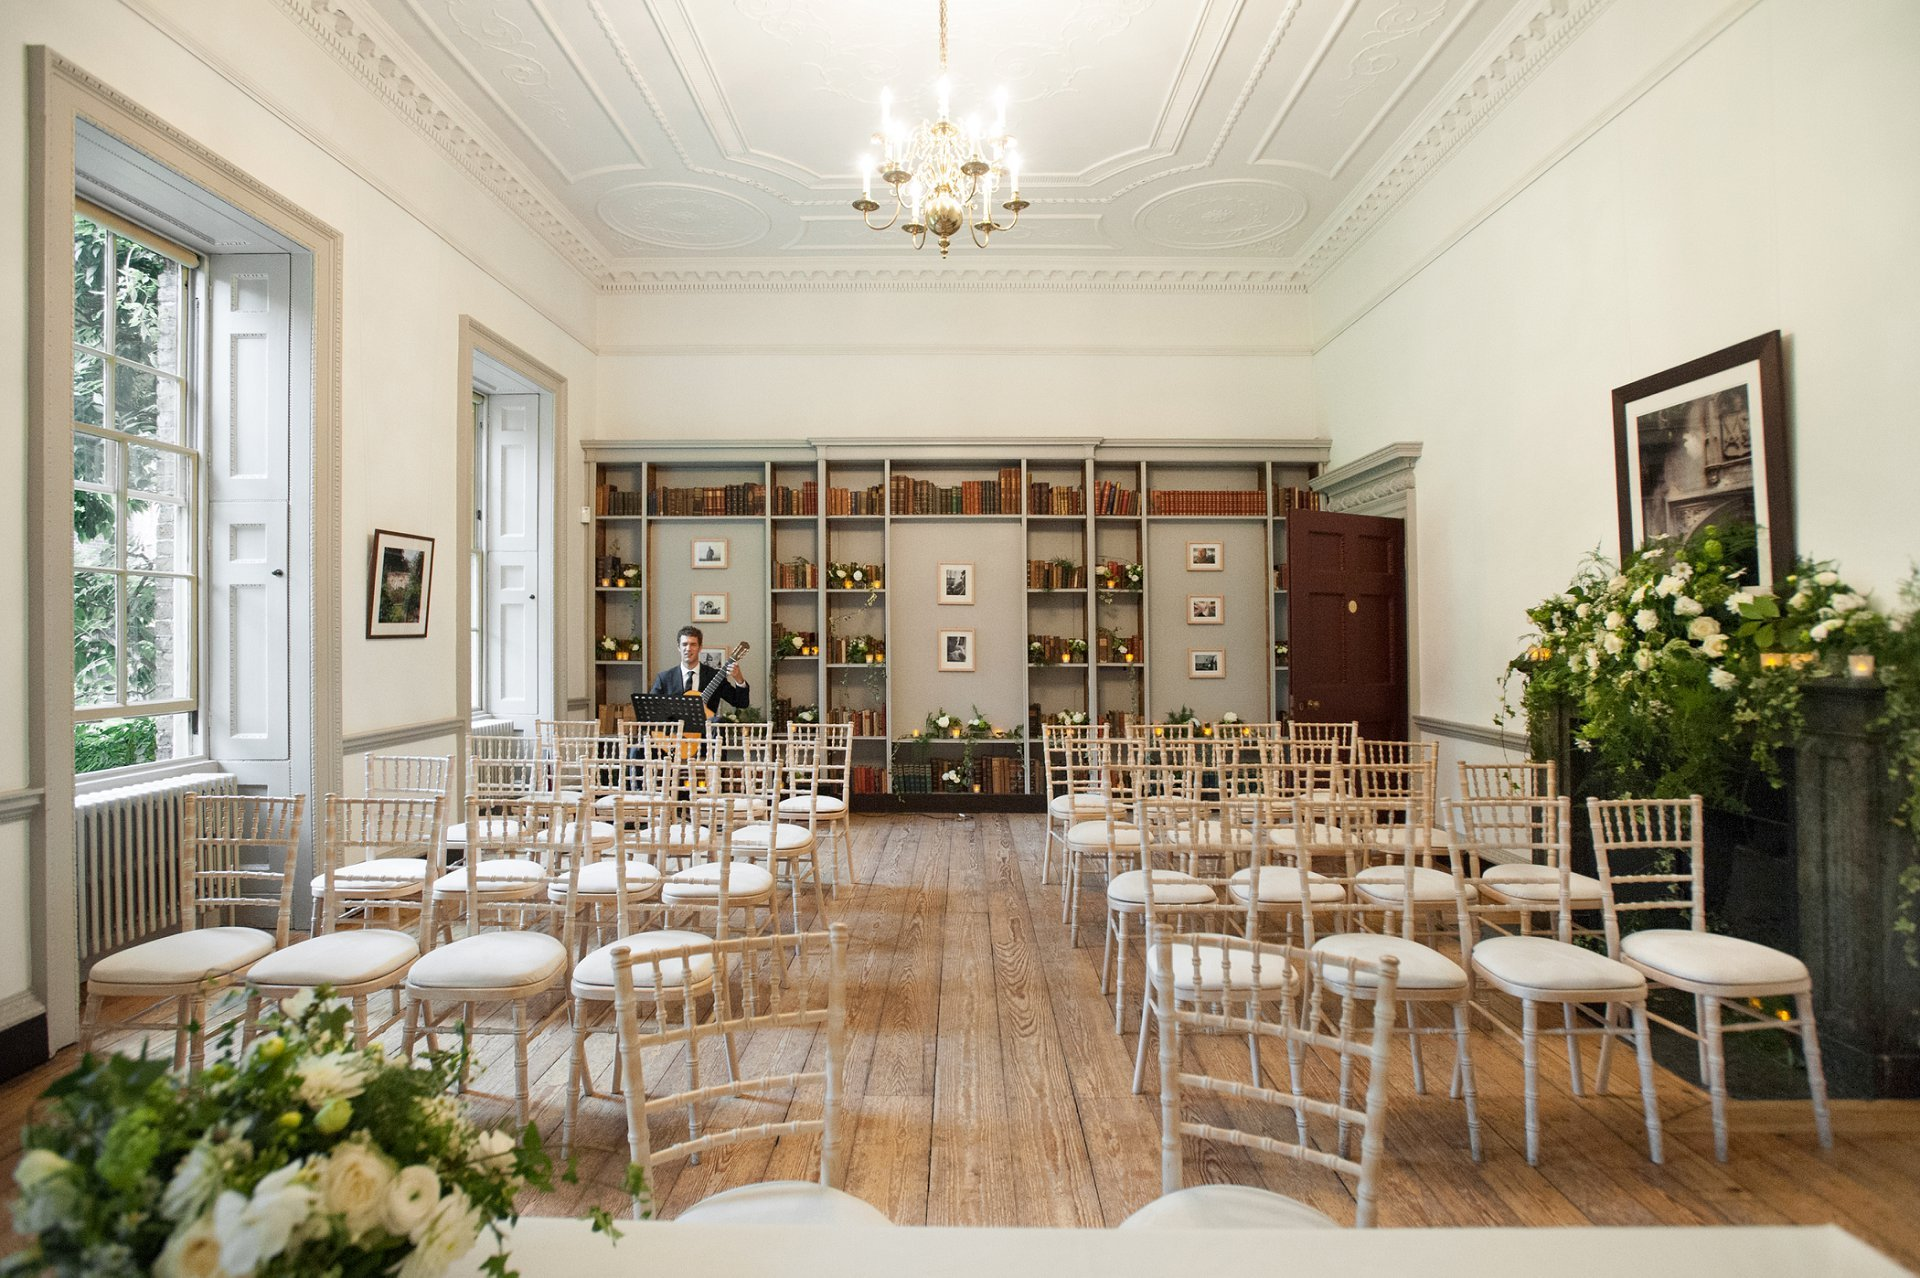 The Bishop Terrick's Drawing Room at Fulham Palace laid out for a civil marriage ceremony by Hammersmith & Fulham Registry Office